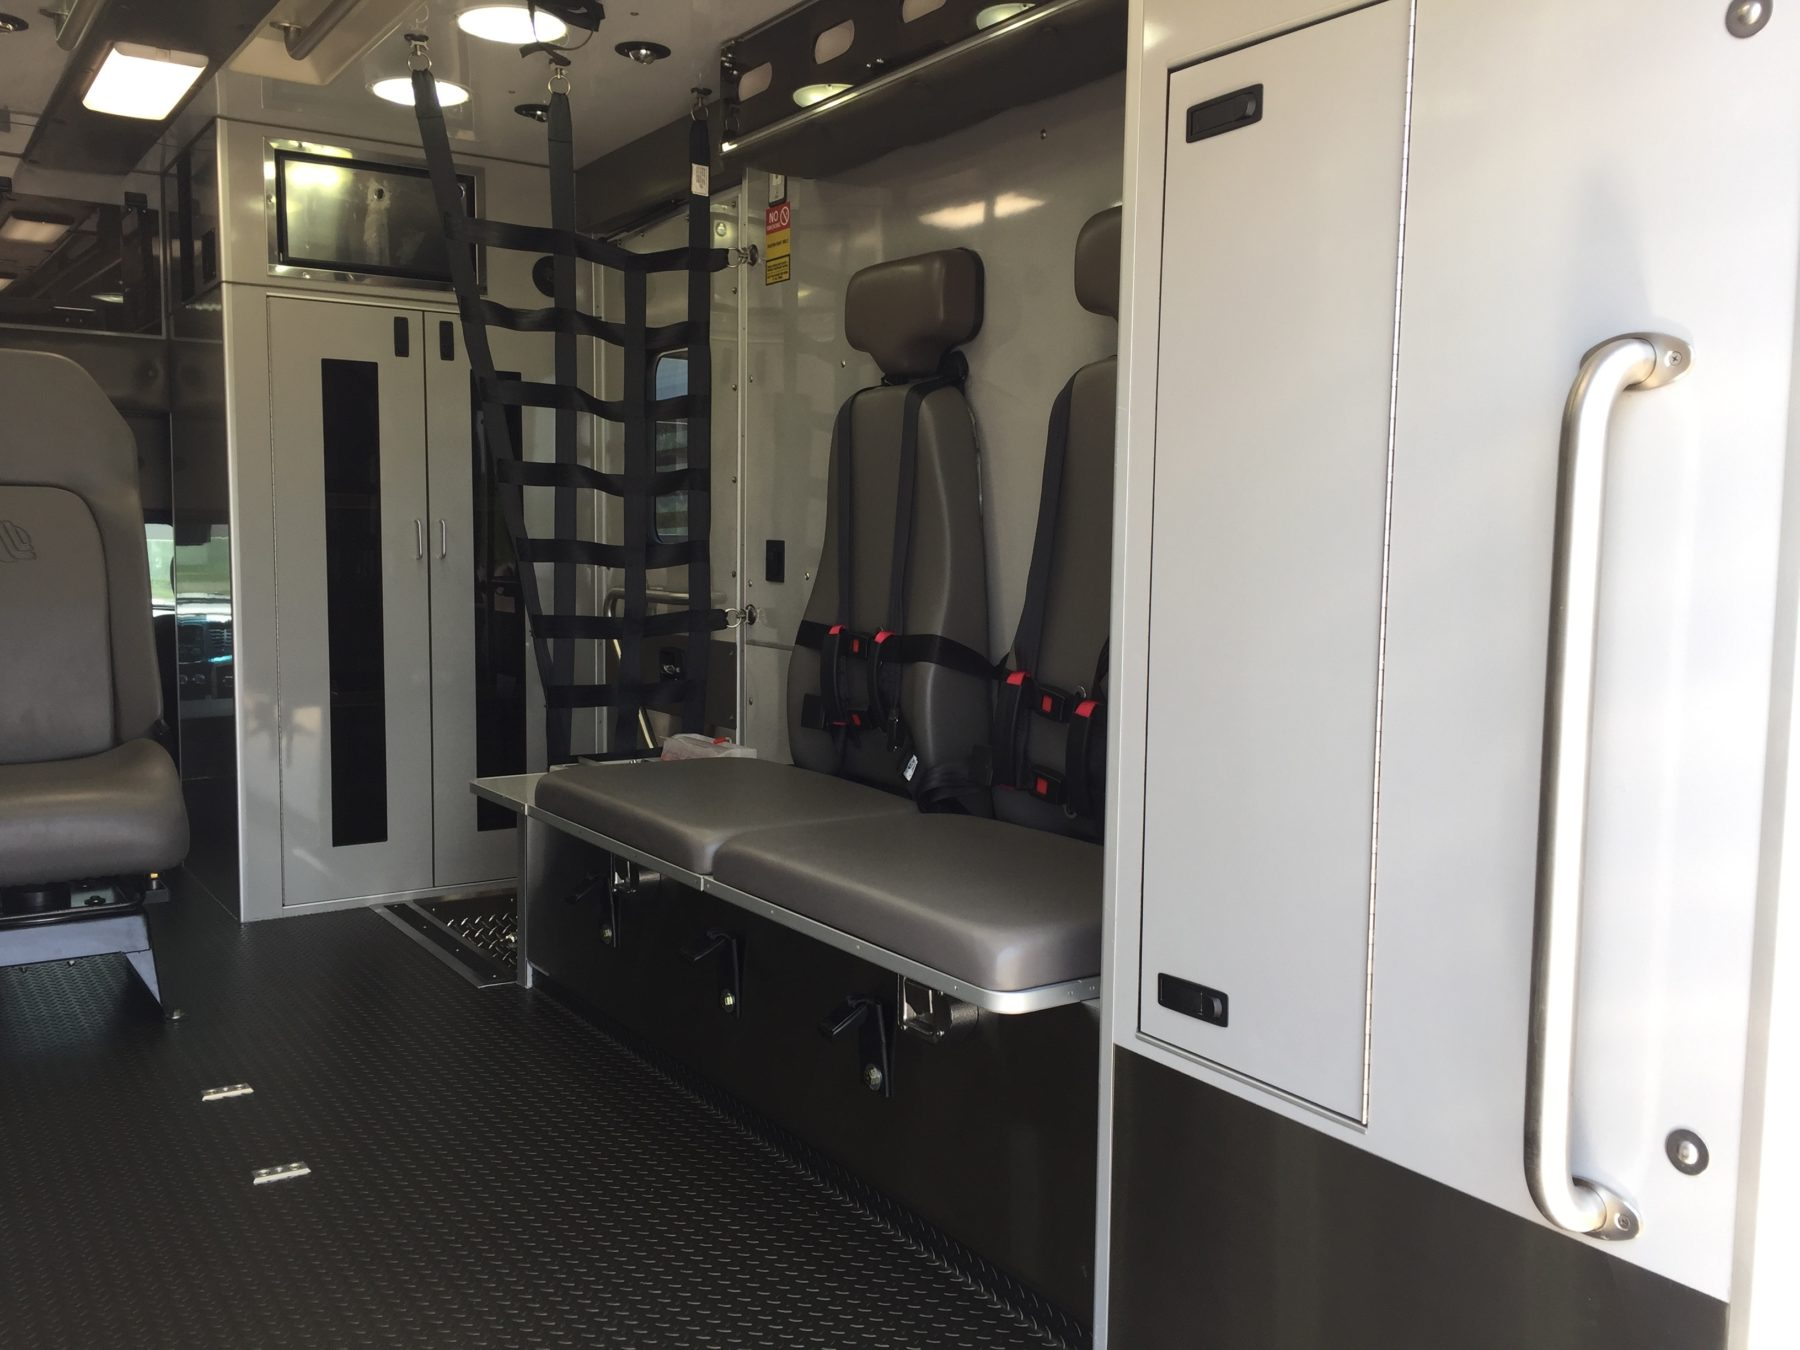 2017 Ram 4500 4x4 Heavy Duty Ambulance For Sale – Picture 12